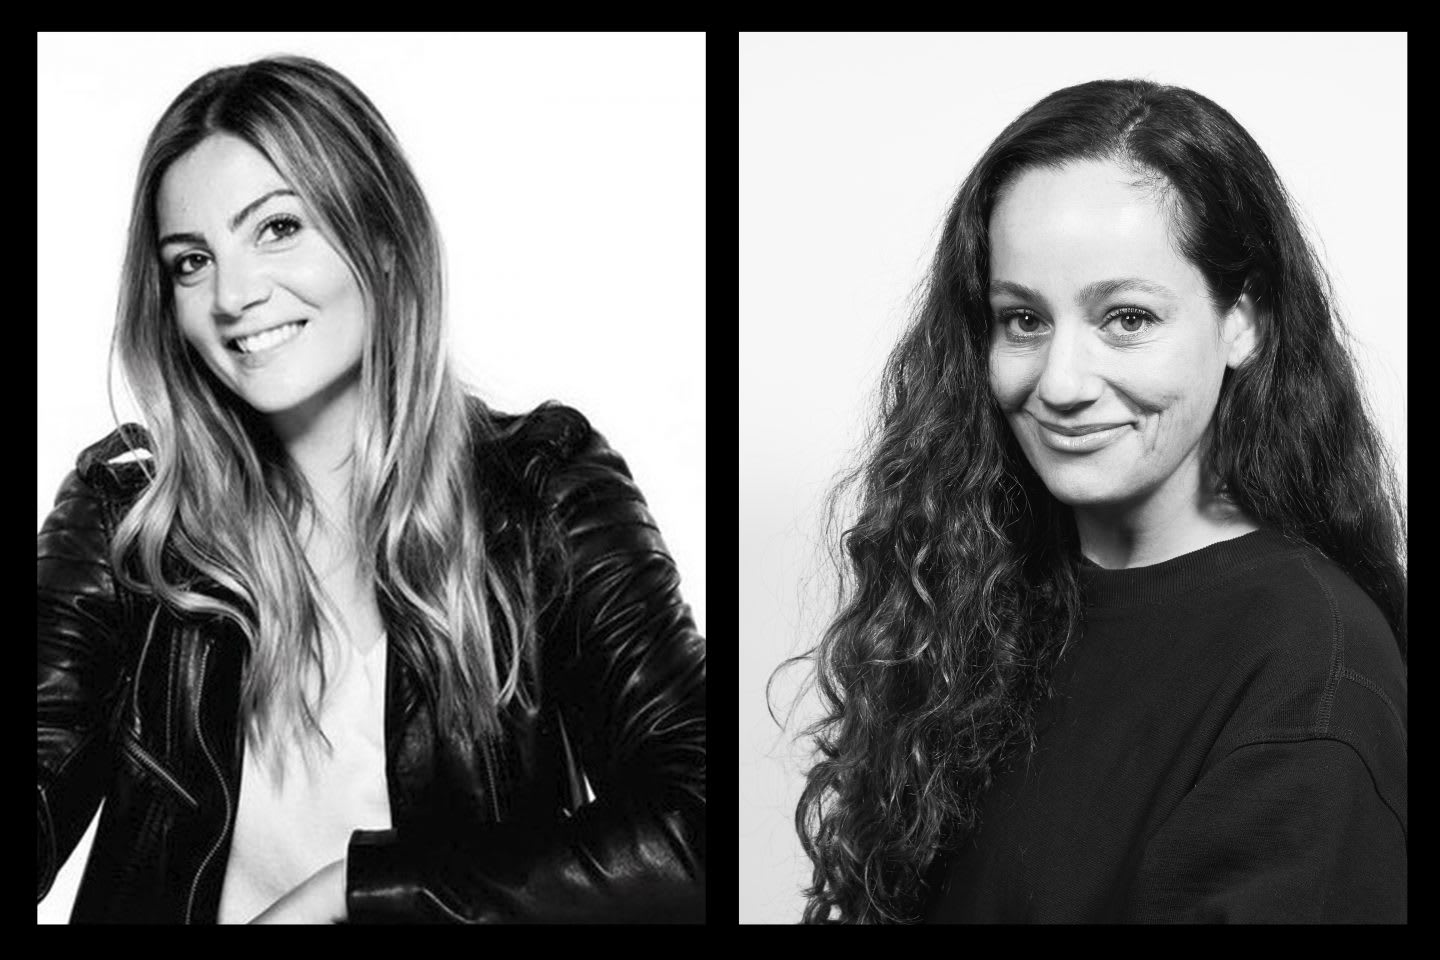 Reebok employees from the fashion collaborations team, Erica Tappin, Pamela Senese-Cooke, teamwork, team, collaboration